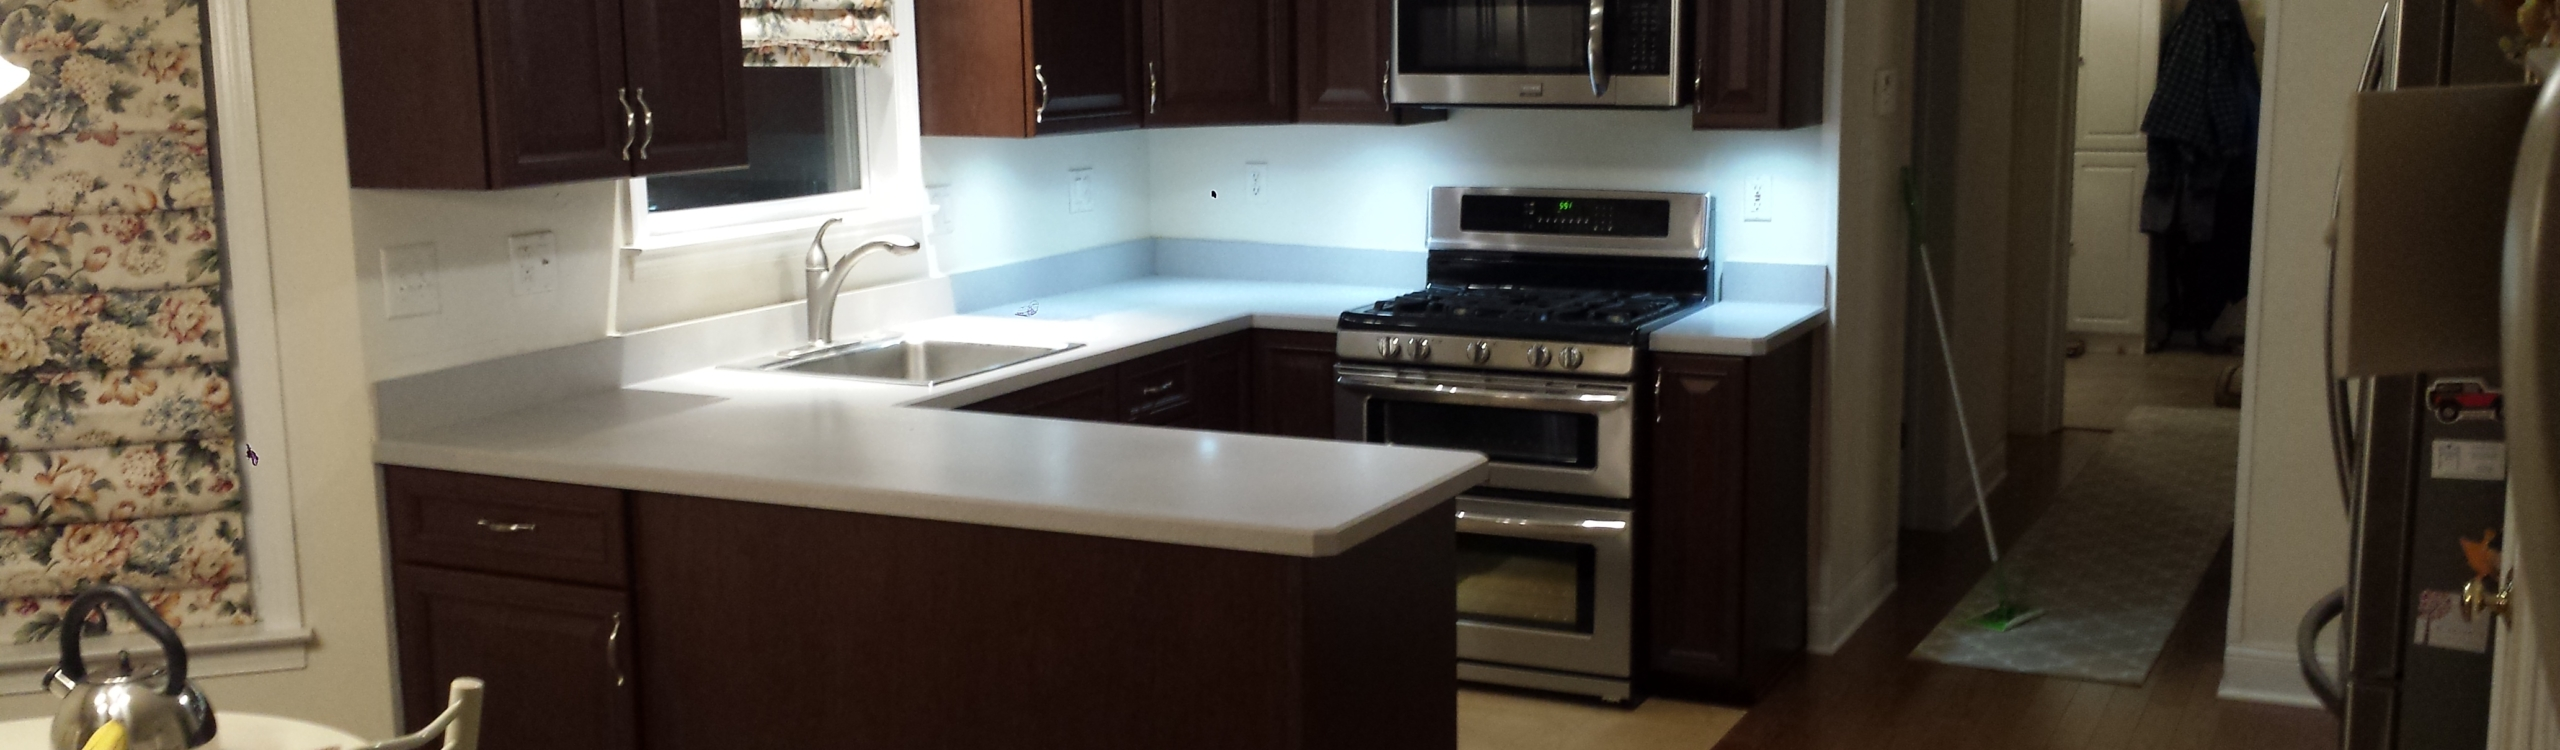 before kit refacing home reface cl stuart custom kitchen remodel improvement llc